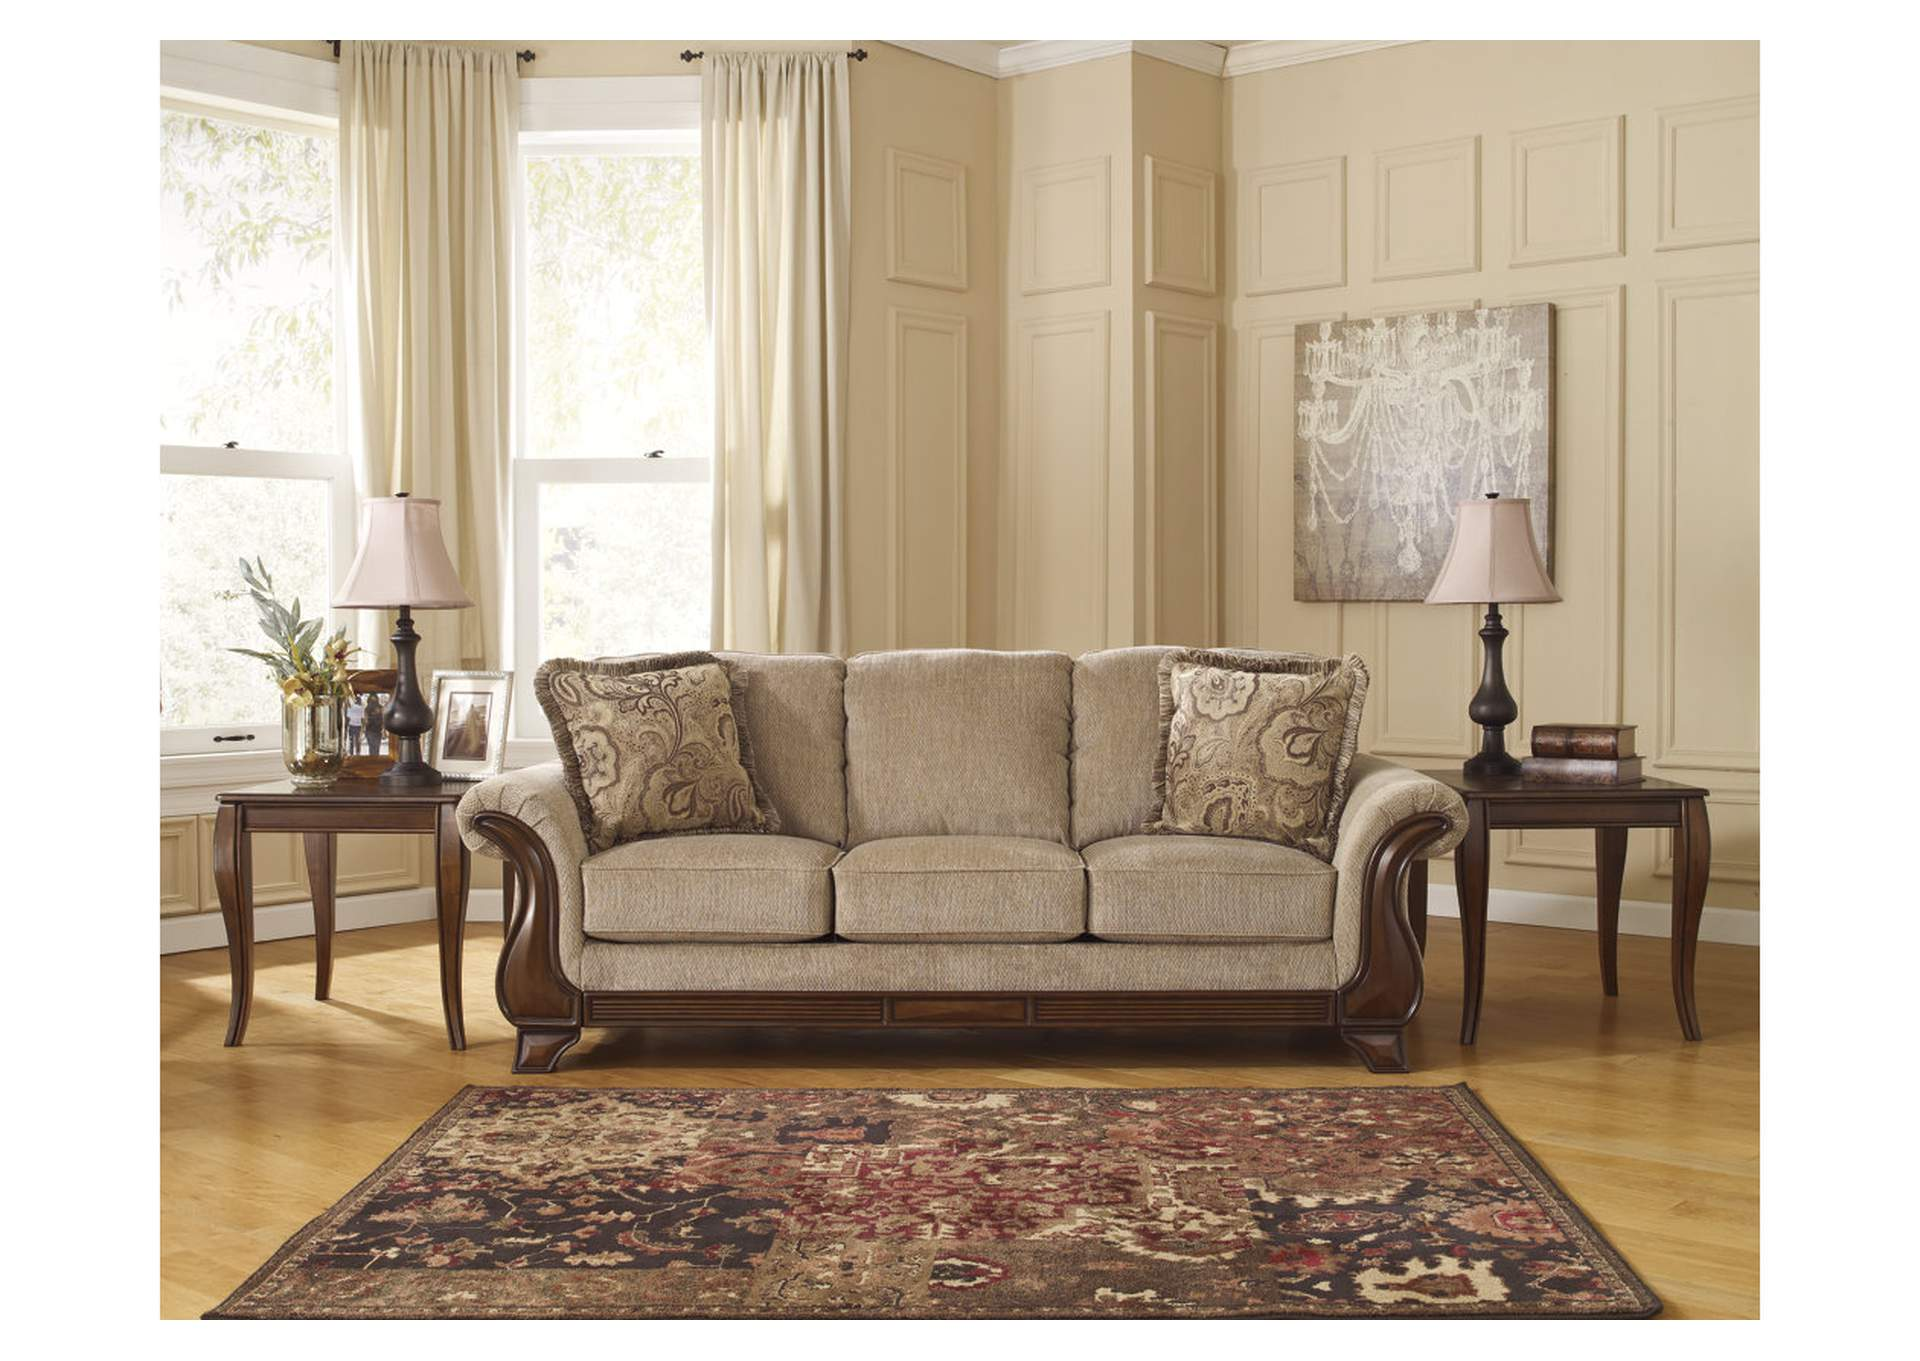 Pitusa Furniture Elizabeth Nj Lanett Sofa